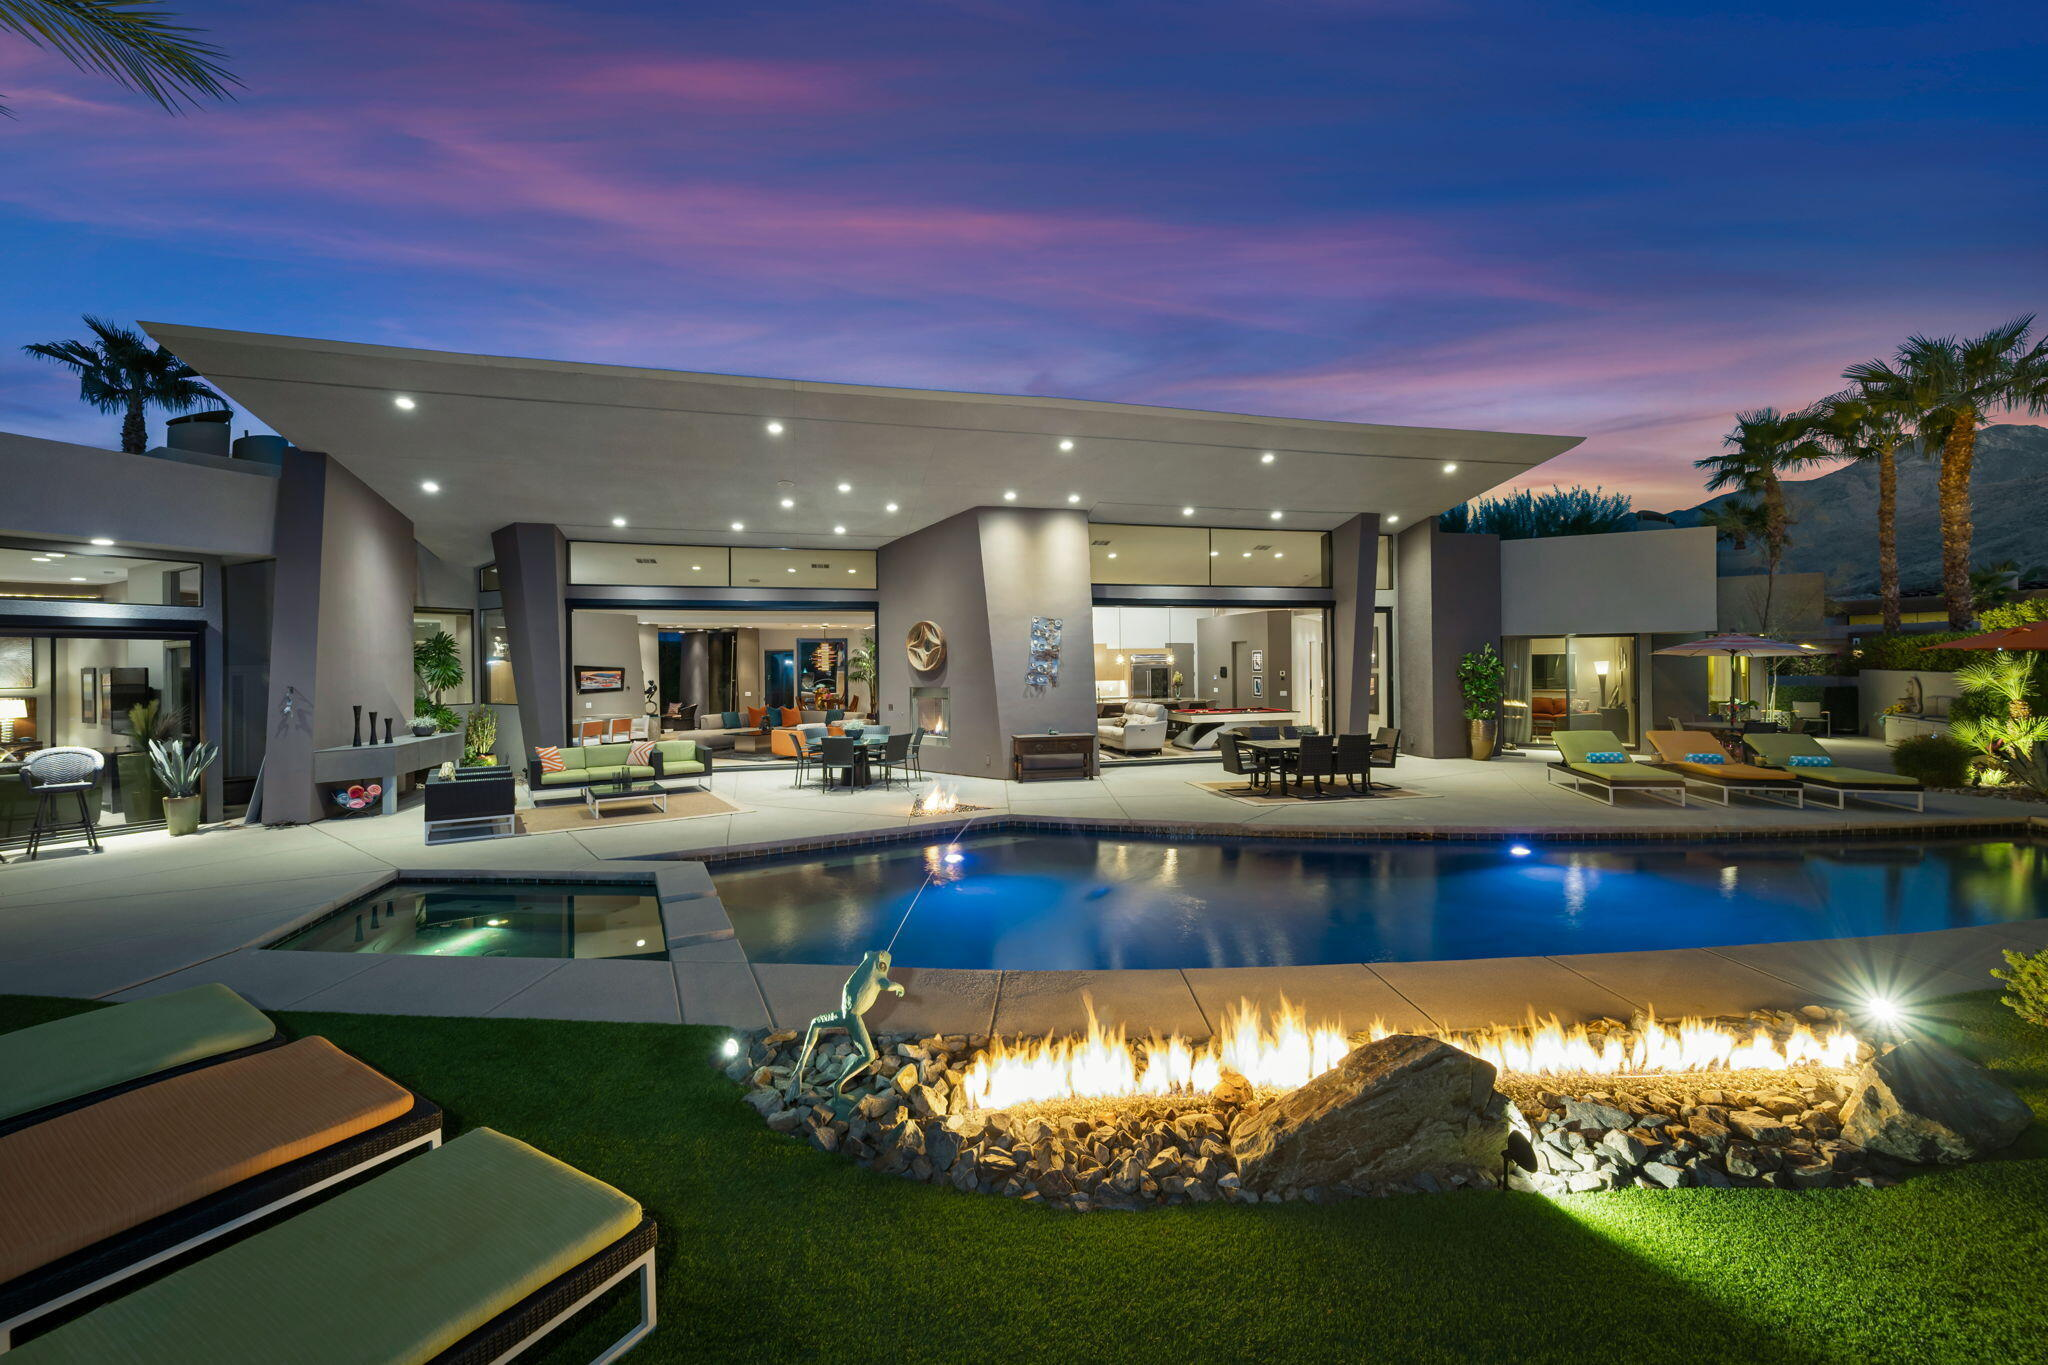 This artistically conceived top-tier estate was designed by award winning local architect Narendra Patel, and is located in the south Palm Springs gated enclave of Alta.  The home is surrounded by spectacular mountain views from almost everywhere inside and out! The two sets of motorirzed disappearing walls of glass open to one of the most breathtaking resort backyards in the desert! With the San Jacinto mountains as the backdrop, the park-like grounds include a pool, spa, outdoor kitchen, multiple firepits, fireplace, a grand rock water feature and lush landscaping!  This desirable plan includes a formal living room with wet-bar, formal dining room, a family/media room and a separate home office! The Epicurean kitchen has stainless steel appliances, walk-in pantry and substantial island with bar seating! The primary suite has a separate media/sitting area, larger steam shower, dual walk-in closets and direct access to the backyard! The additional three suites are perfectly situated at the opposite of the home for privacy! This estate comes with a fully paid and owned 14kw solar system and a three car garage! You own the land!